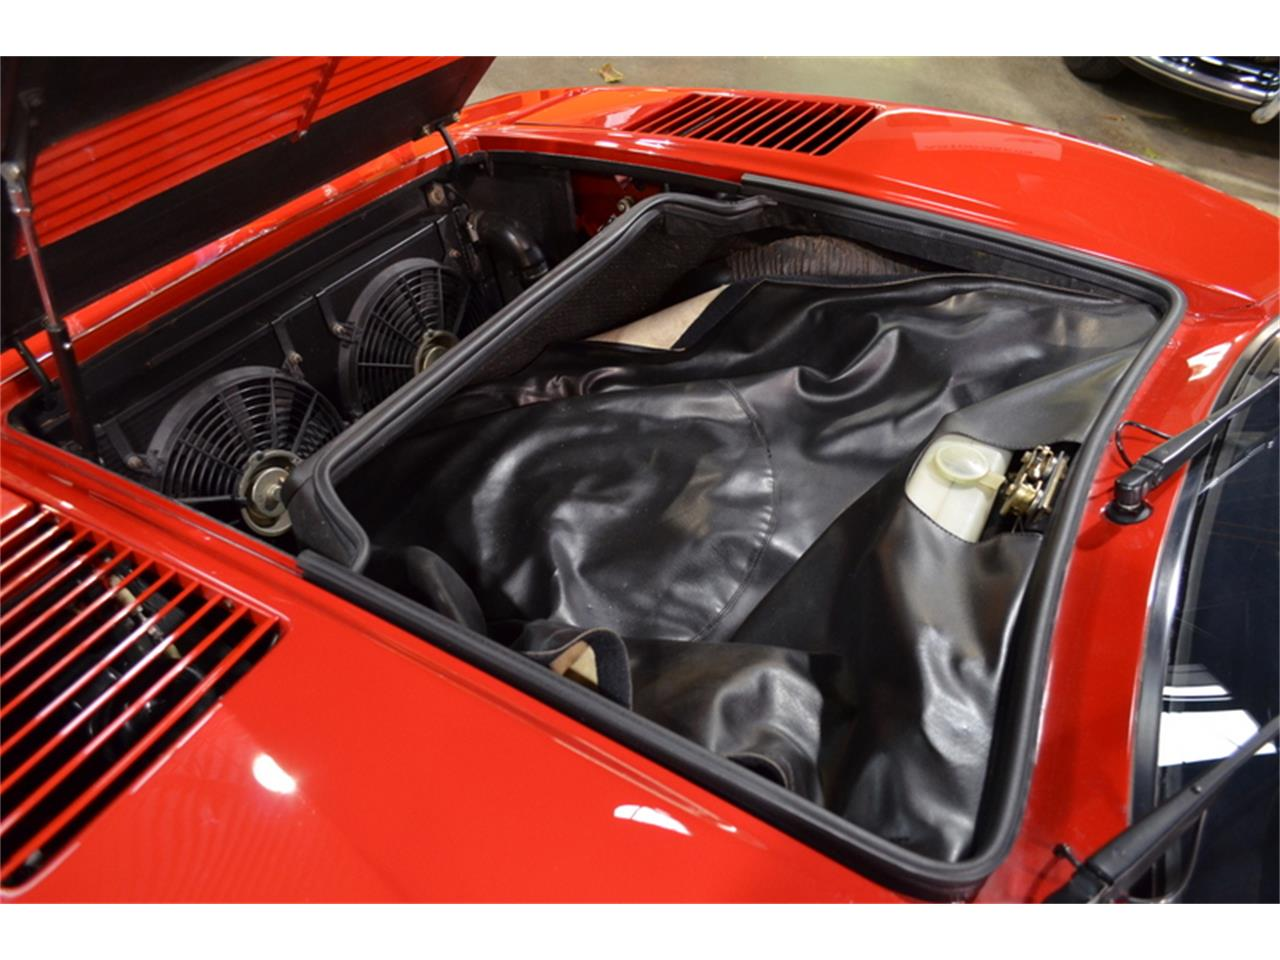 1985 Ferrari GTO for sale in Huntington Station, NY – photo 58